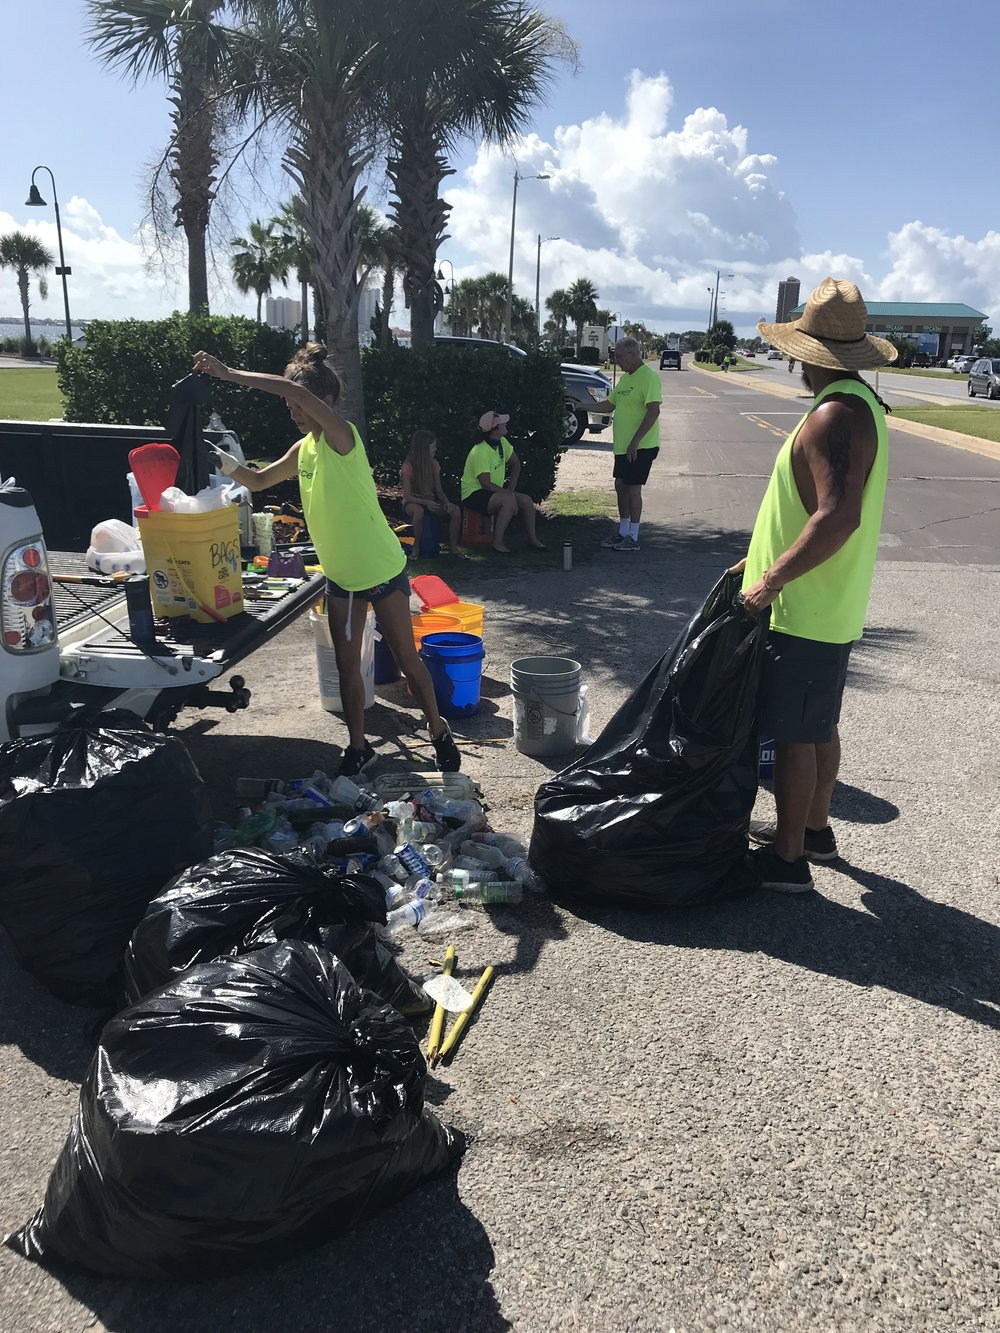 - 17 volunteers picked up 128 lbs of trash from the Bob Sikes' fishing pier to James P Morgan Memorial Park. Of the five 33 gal trash bags, one was recyclable plastic bottles/cans